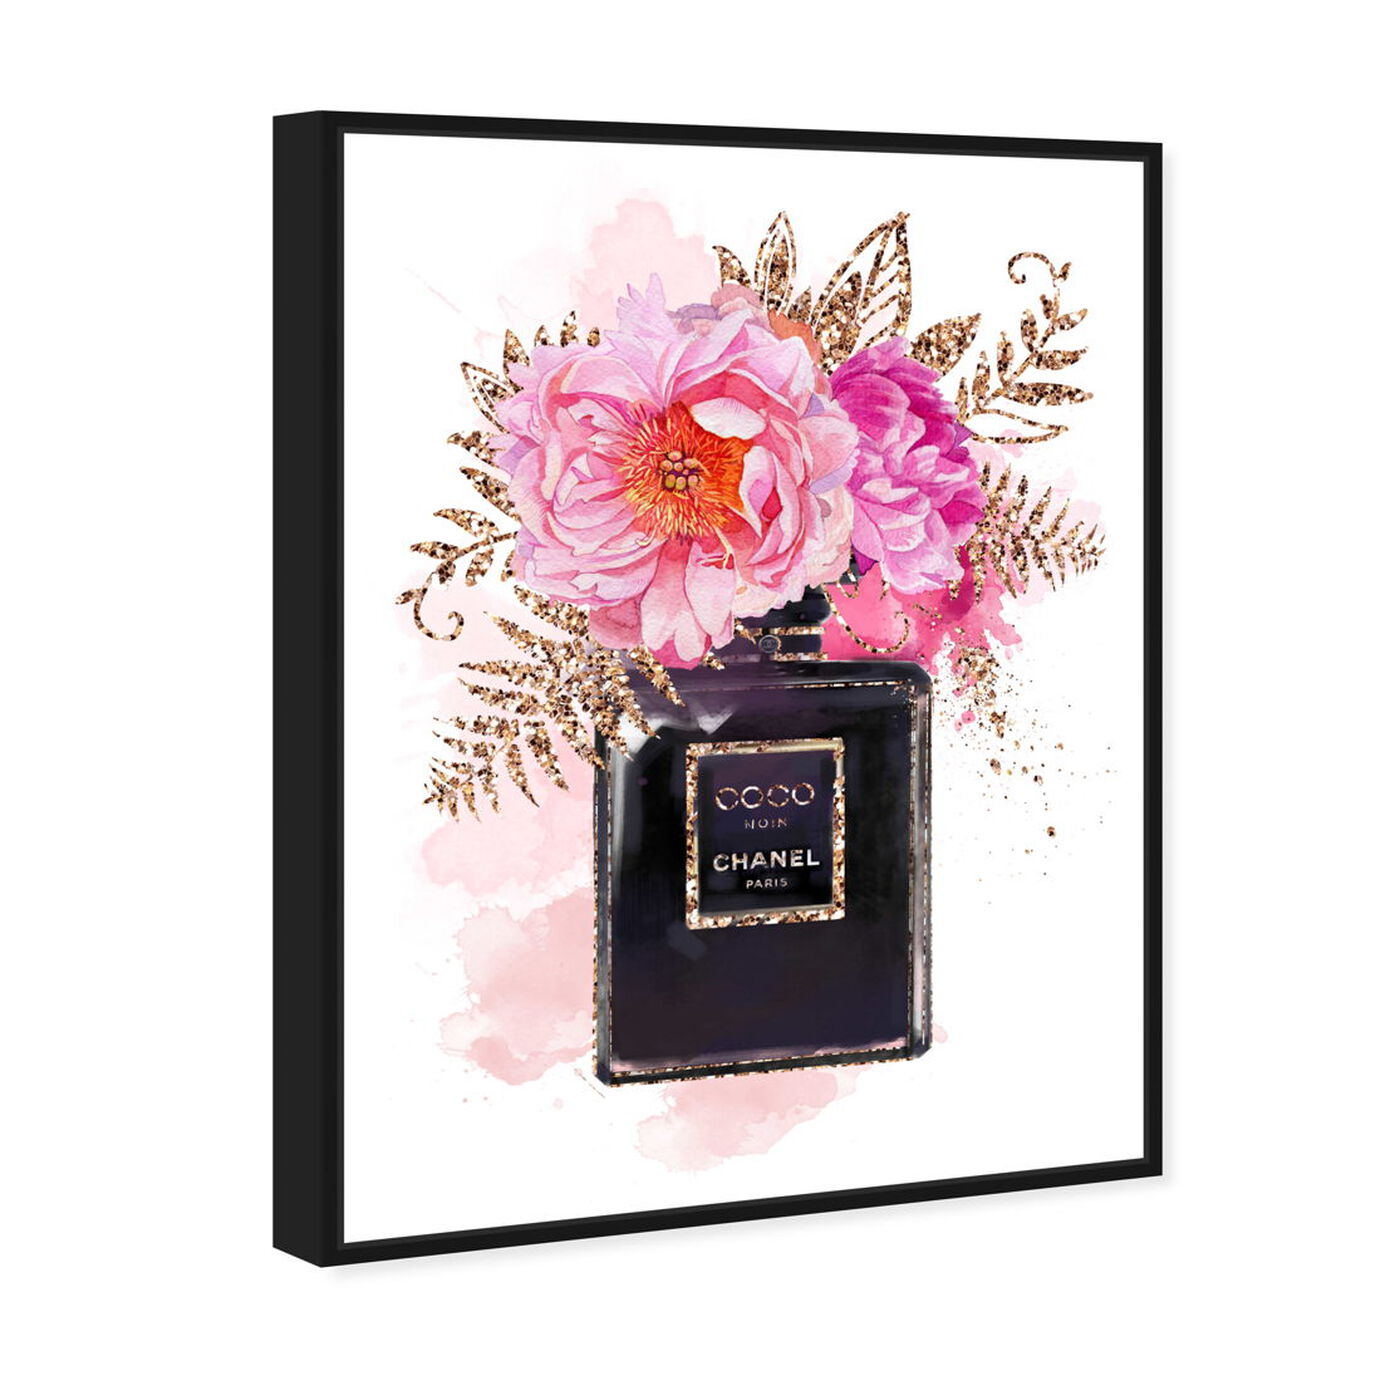 Angled view of Bottled Floral Scent featuring fashion and glam and perfumes art.